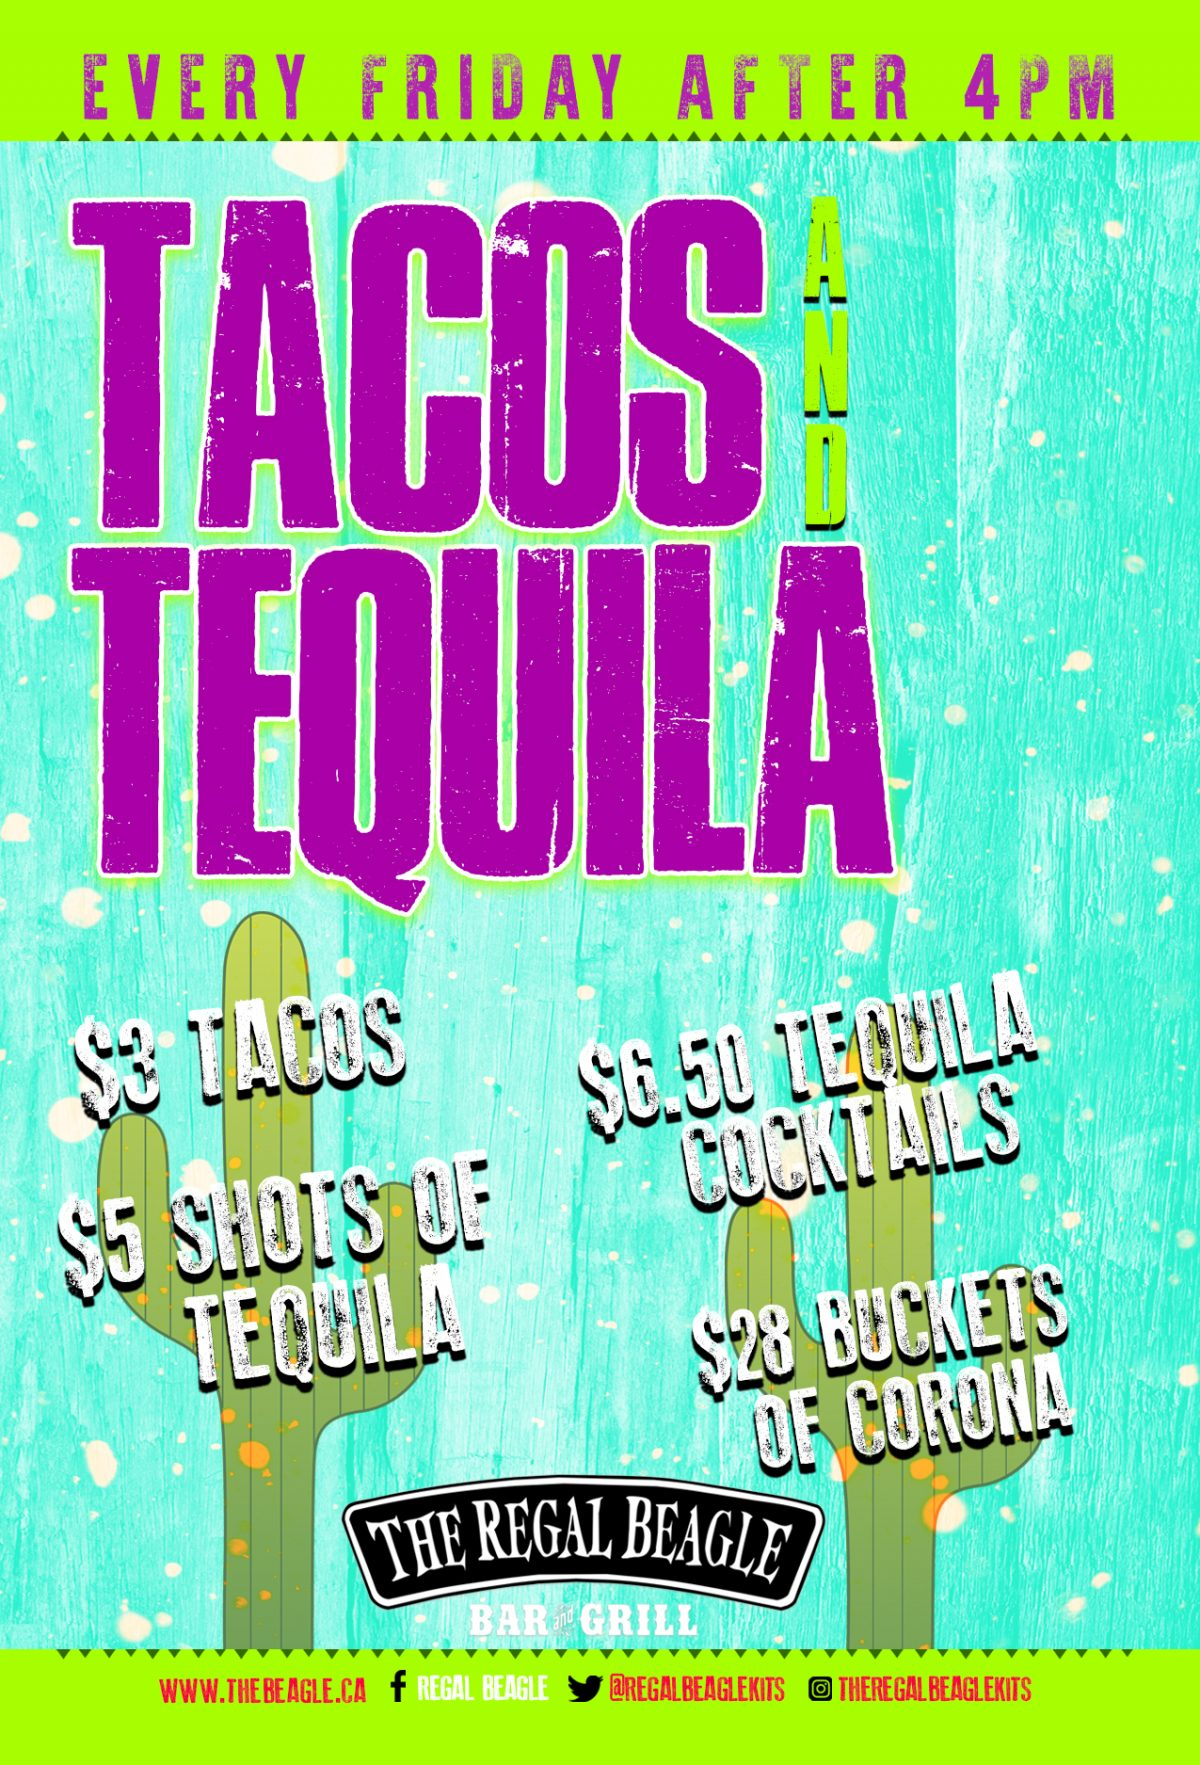 Tacos and Tequila Fridays